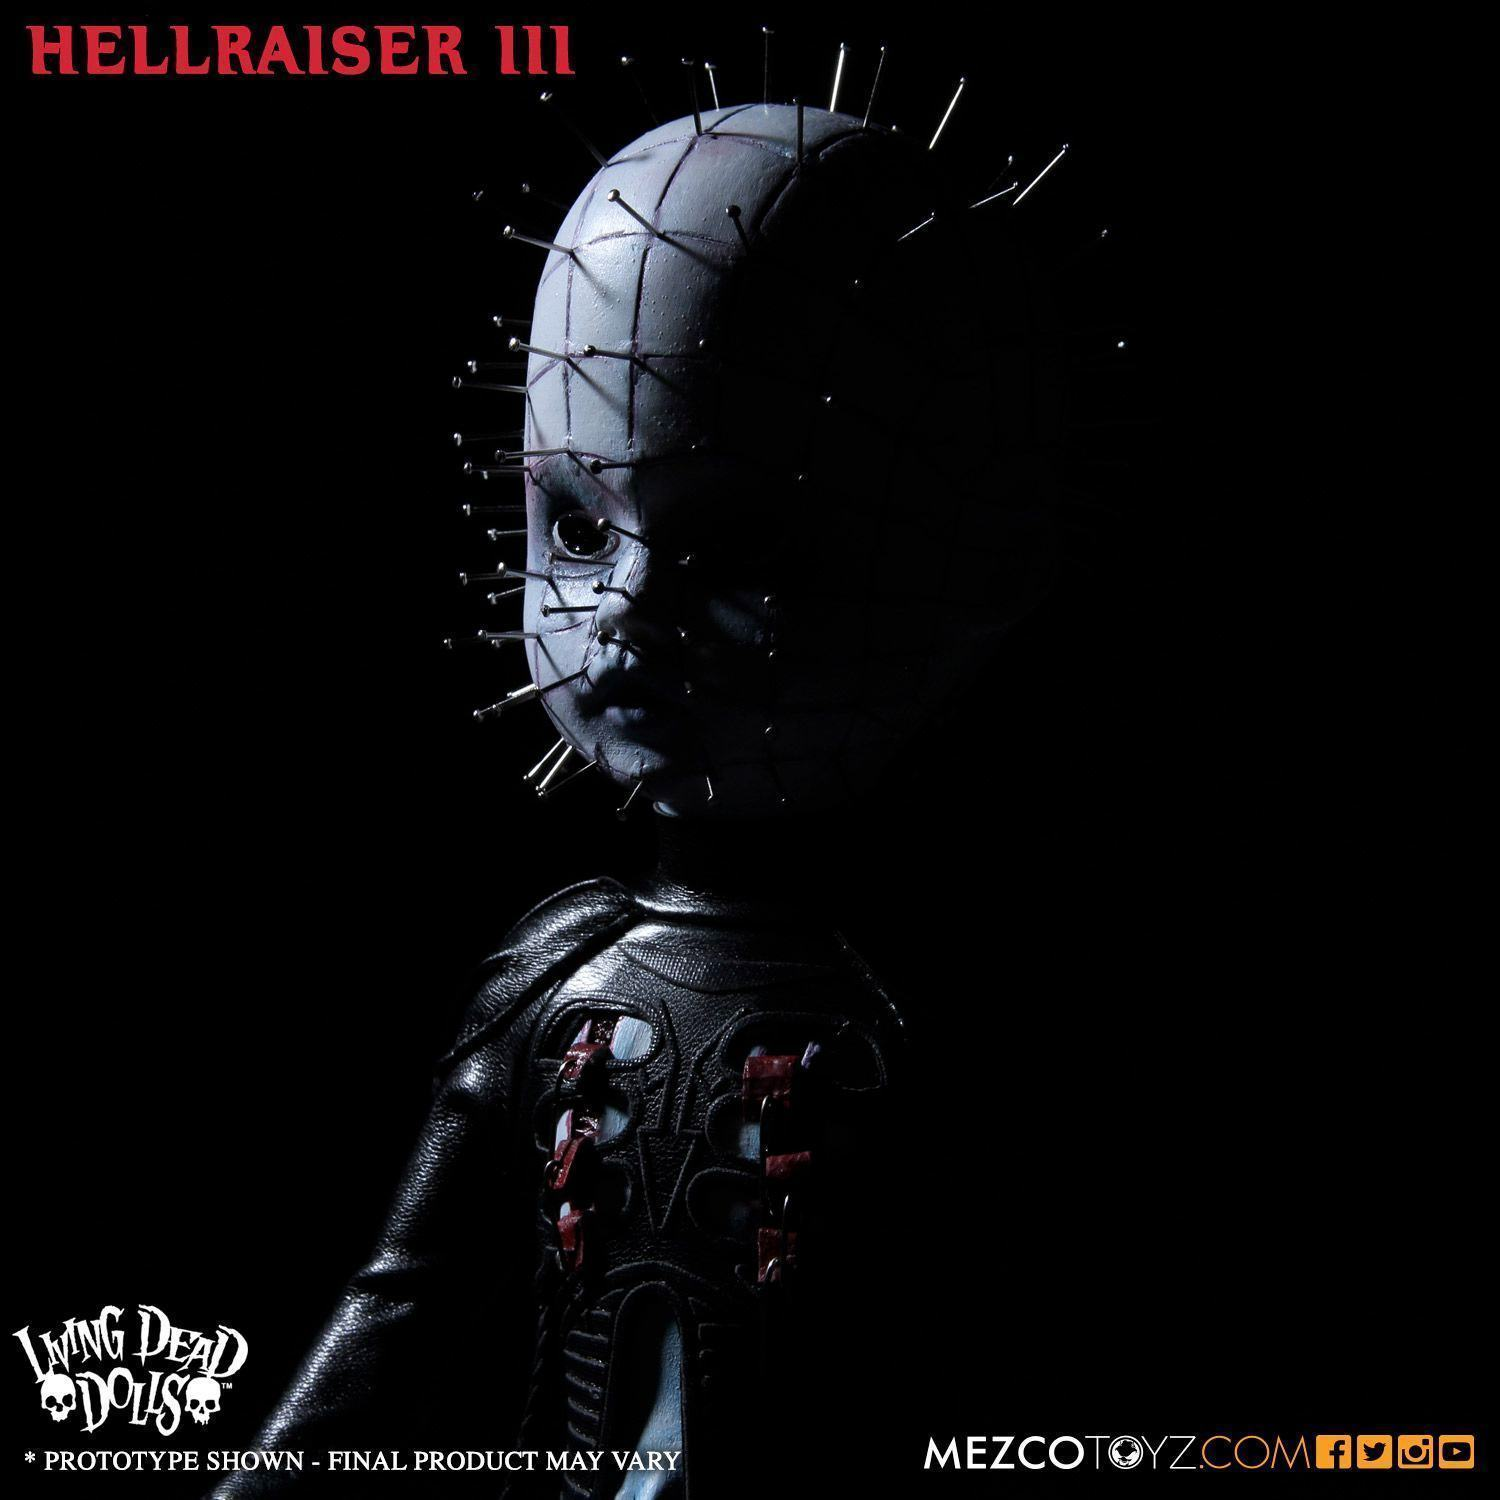 Living-Dead-Dolls-Pinhead-Hellraiser-III-Hell-on-Earth-02